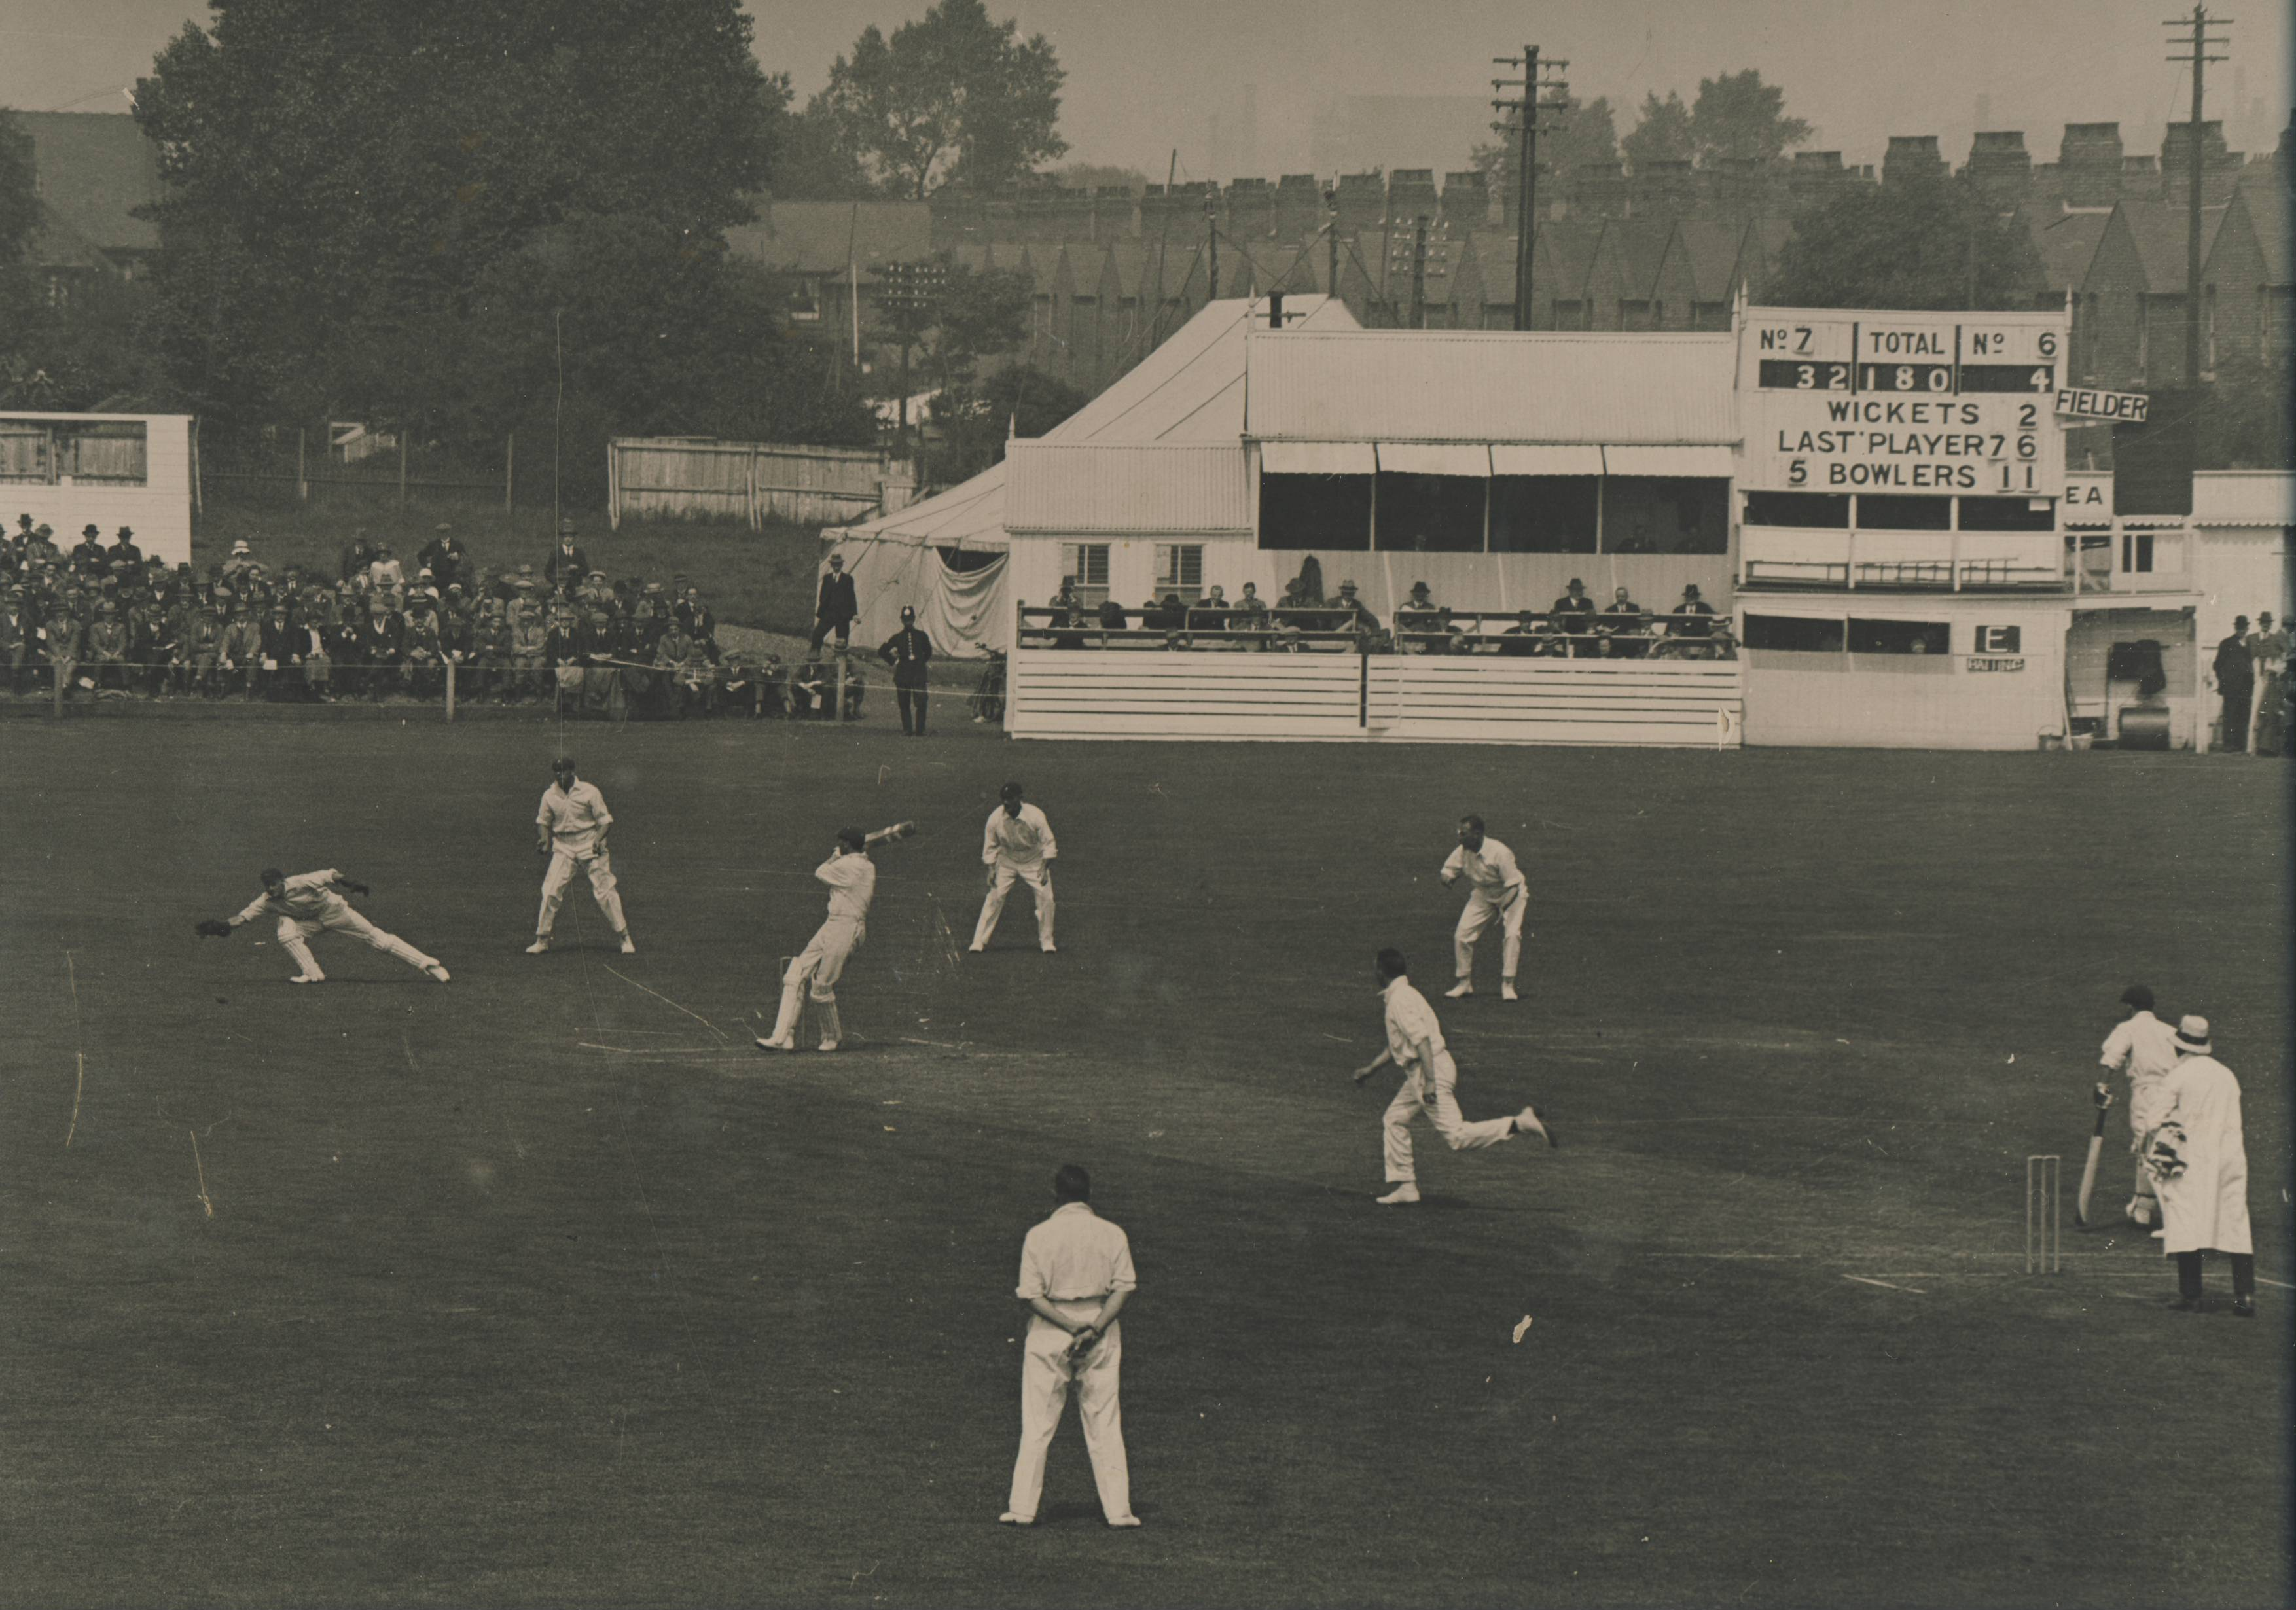 South Africa against England in 1924